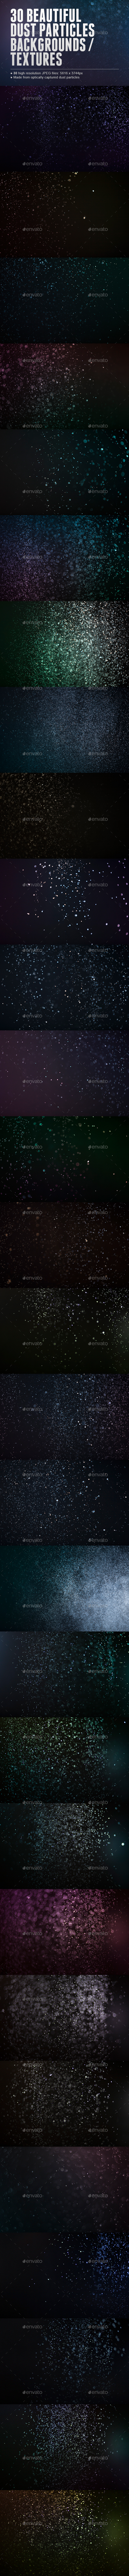 30 Dust Particles Backgrounds / Textures - Abstract Backgrounds